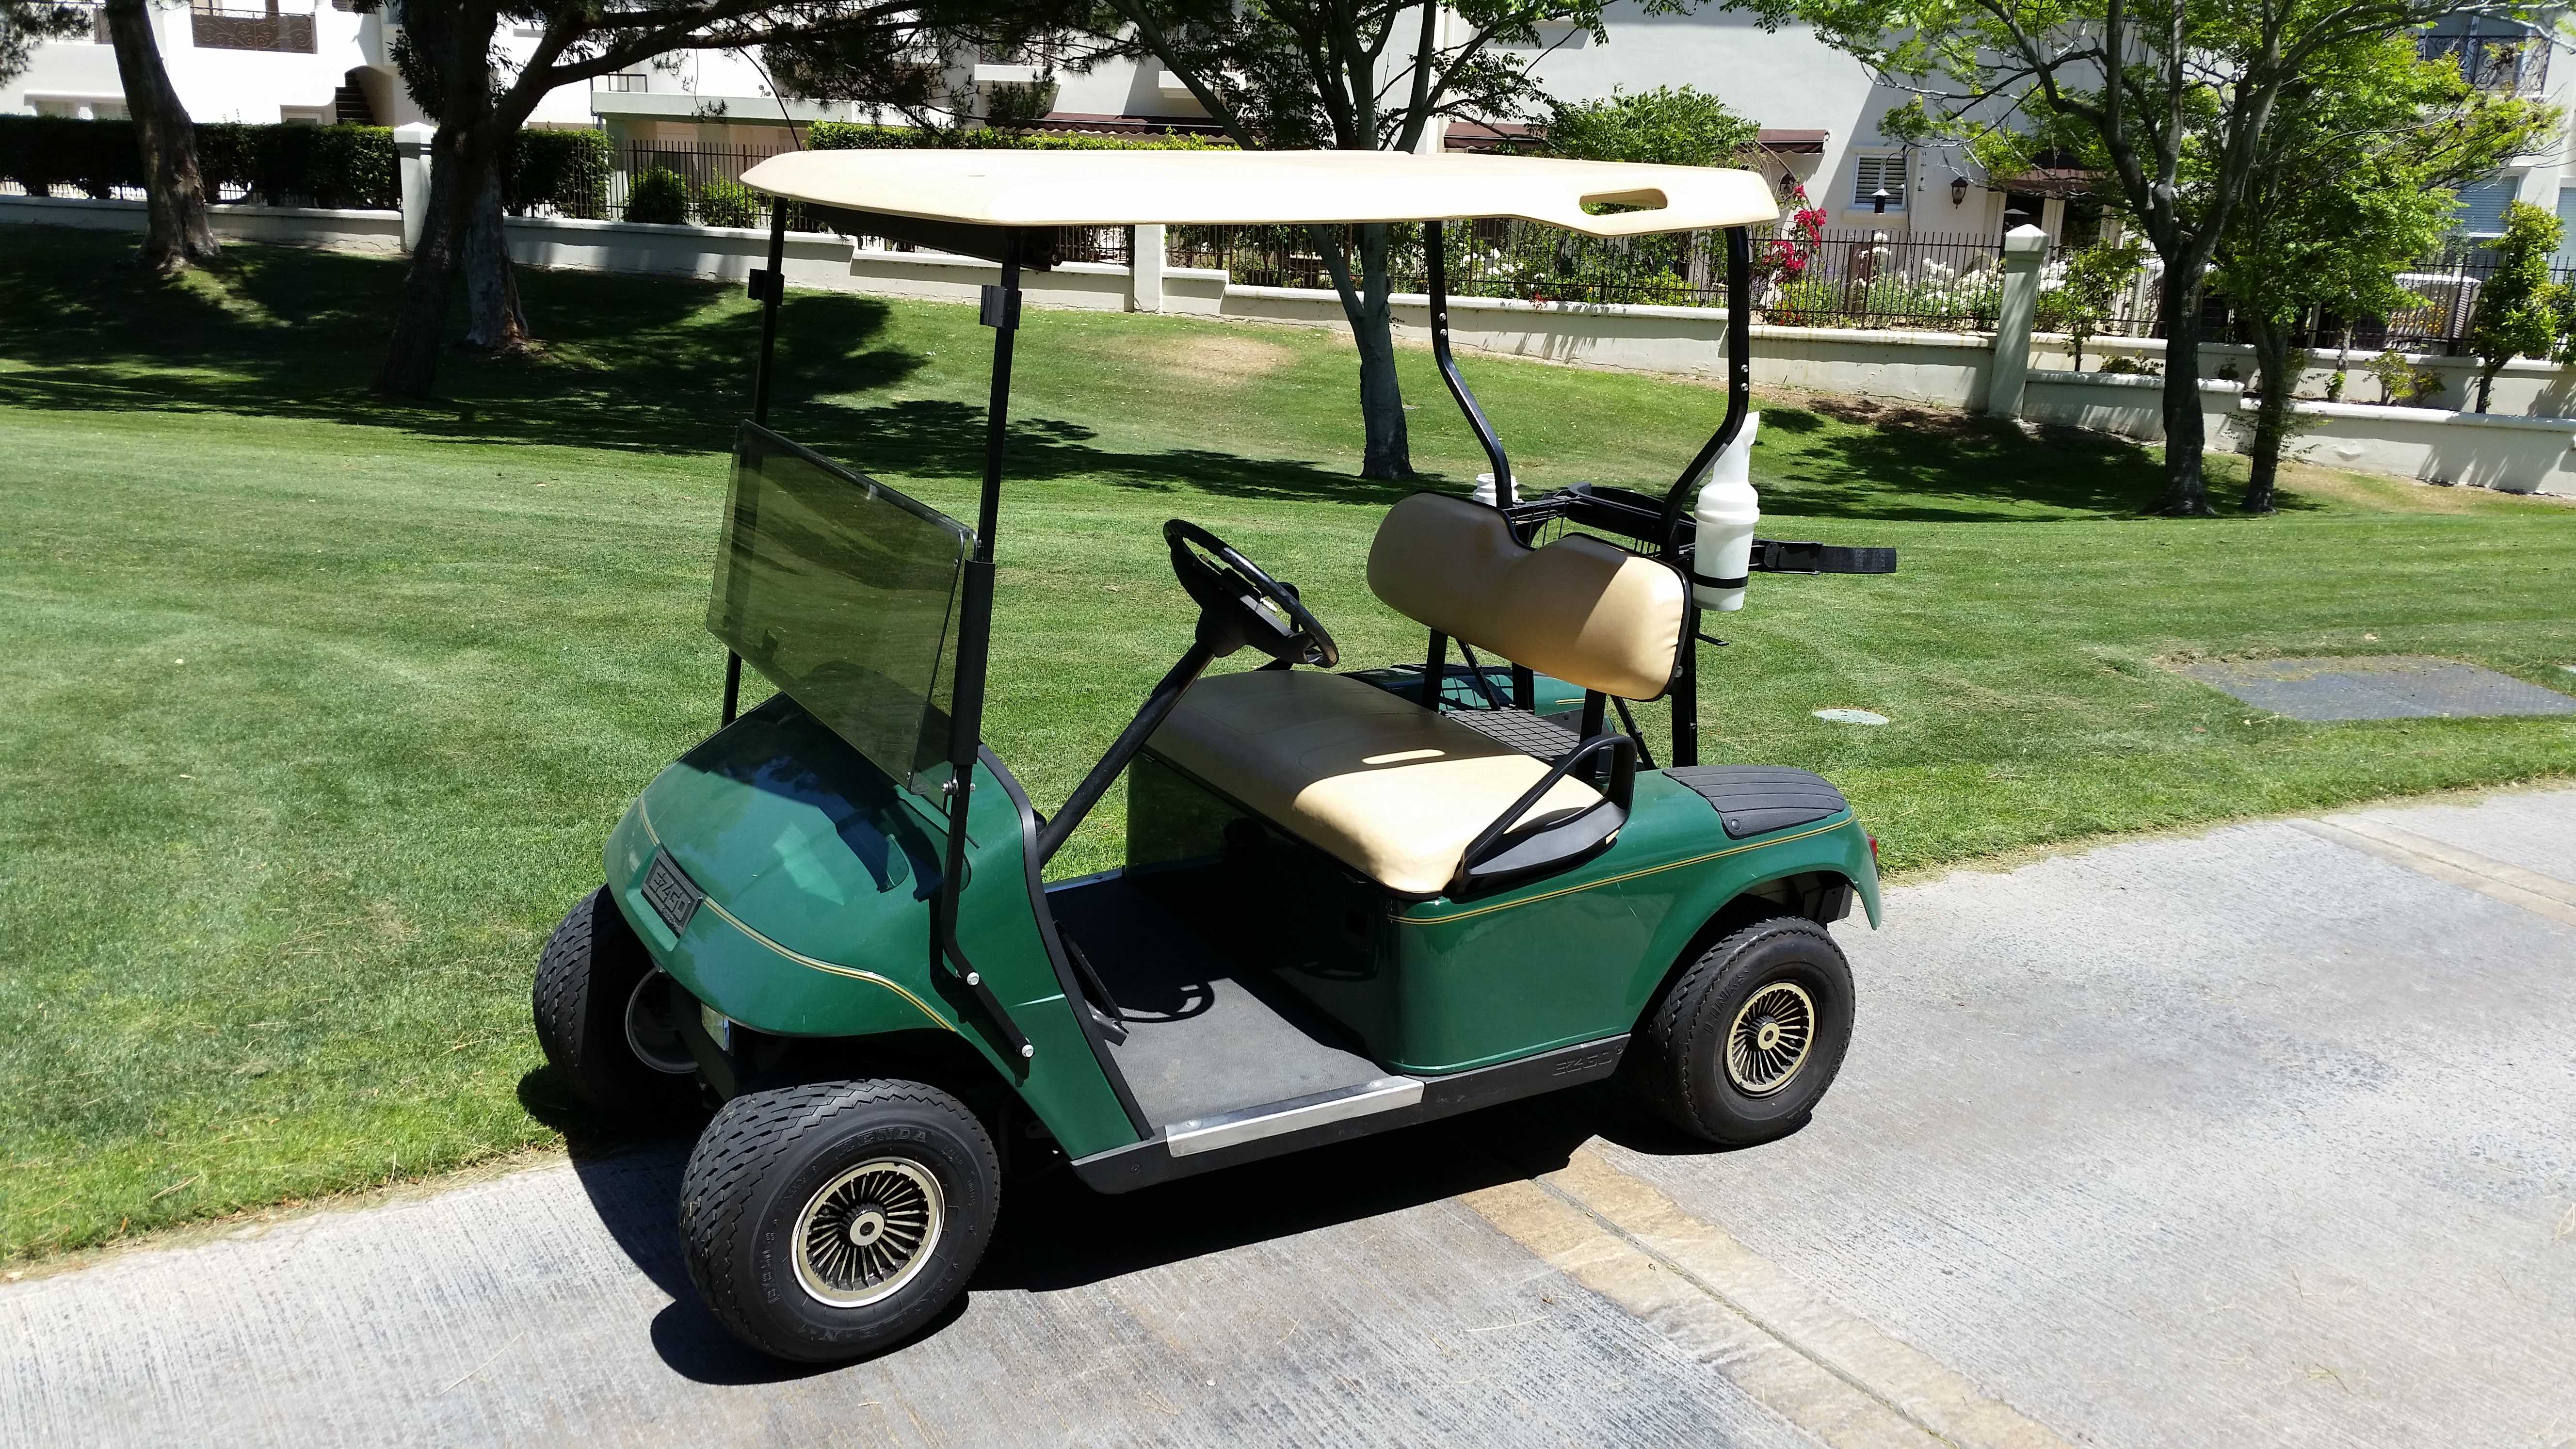 2 Passenger Golf Cart Rentals